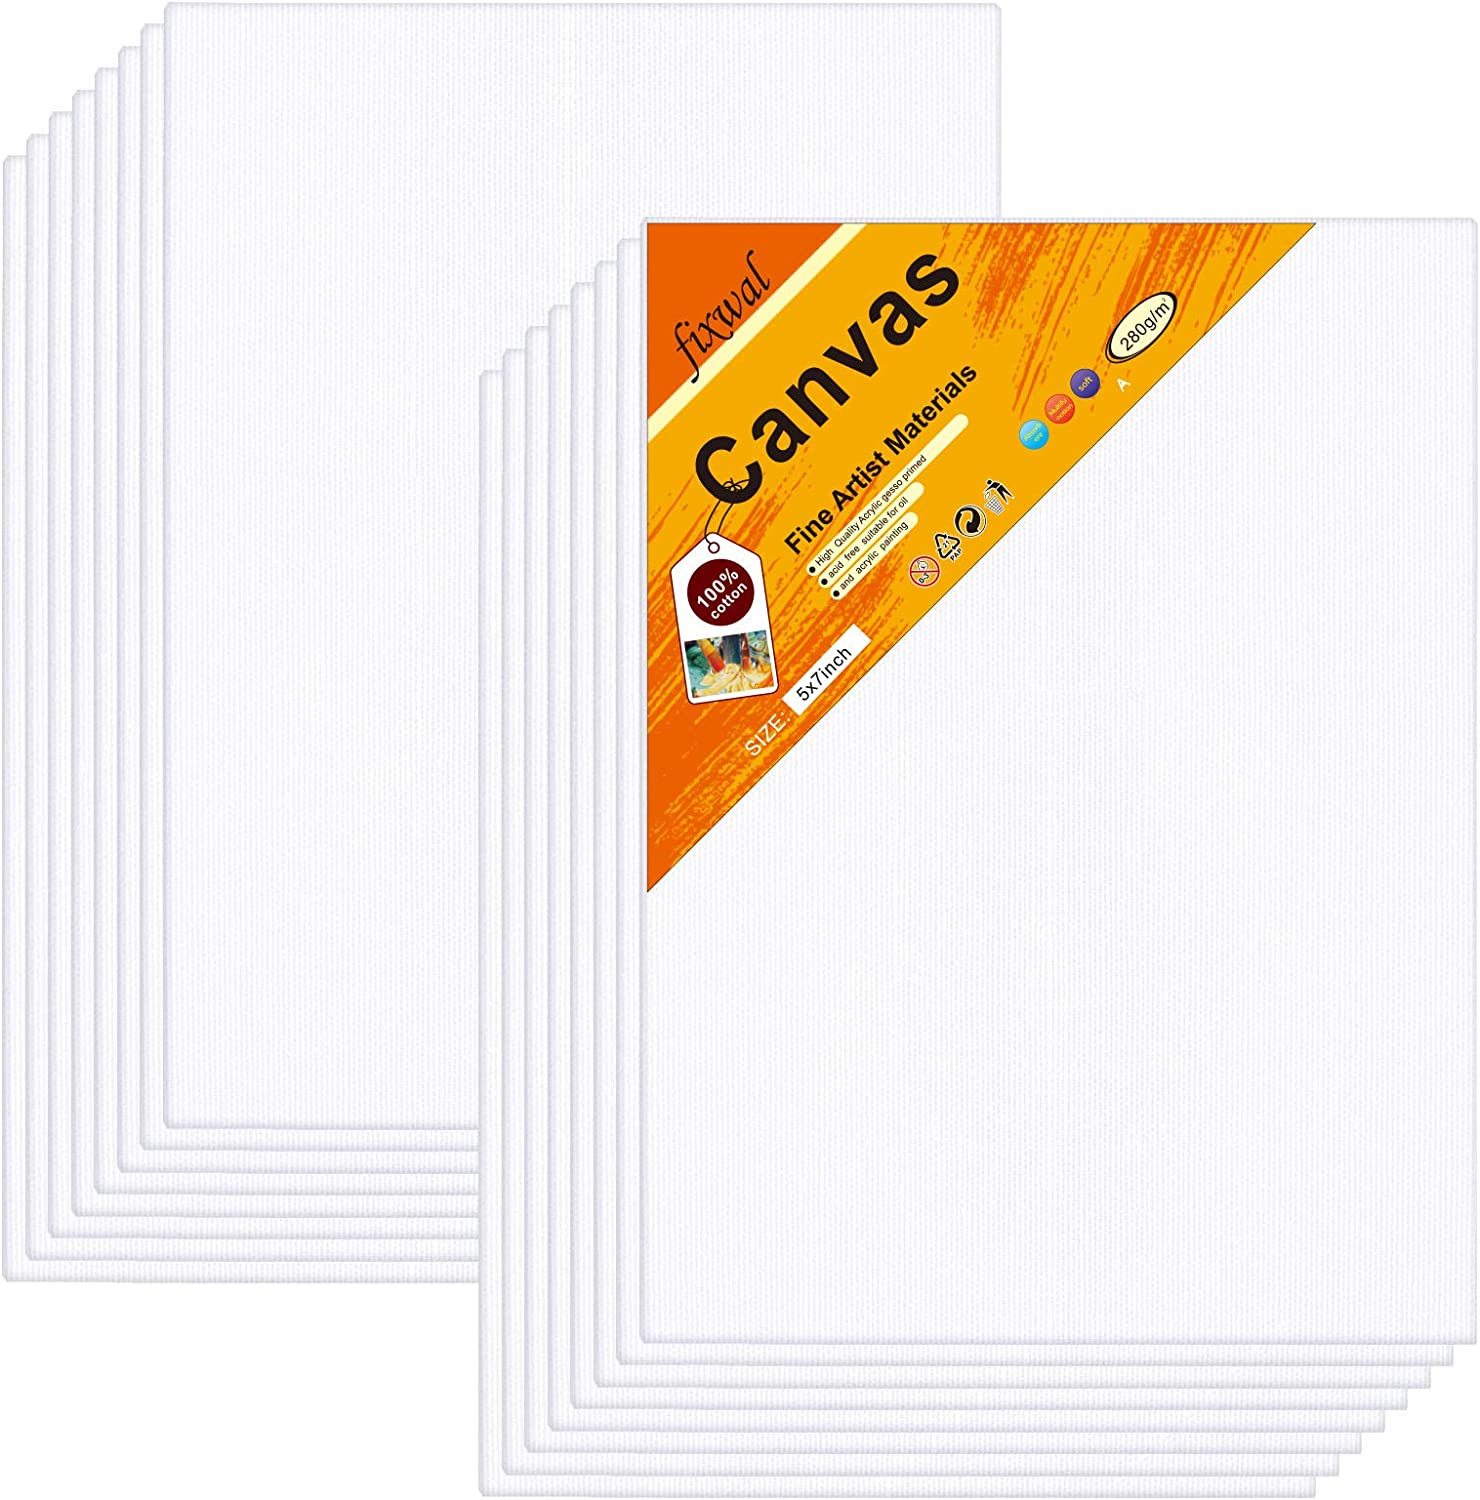 5x7 Inch//16 Pack Artist Painting Canvas Boards Value Pack for Oil /& Acrylic Painting 100/% Cotton Canvas Panels